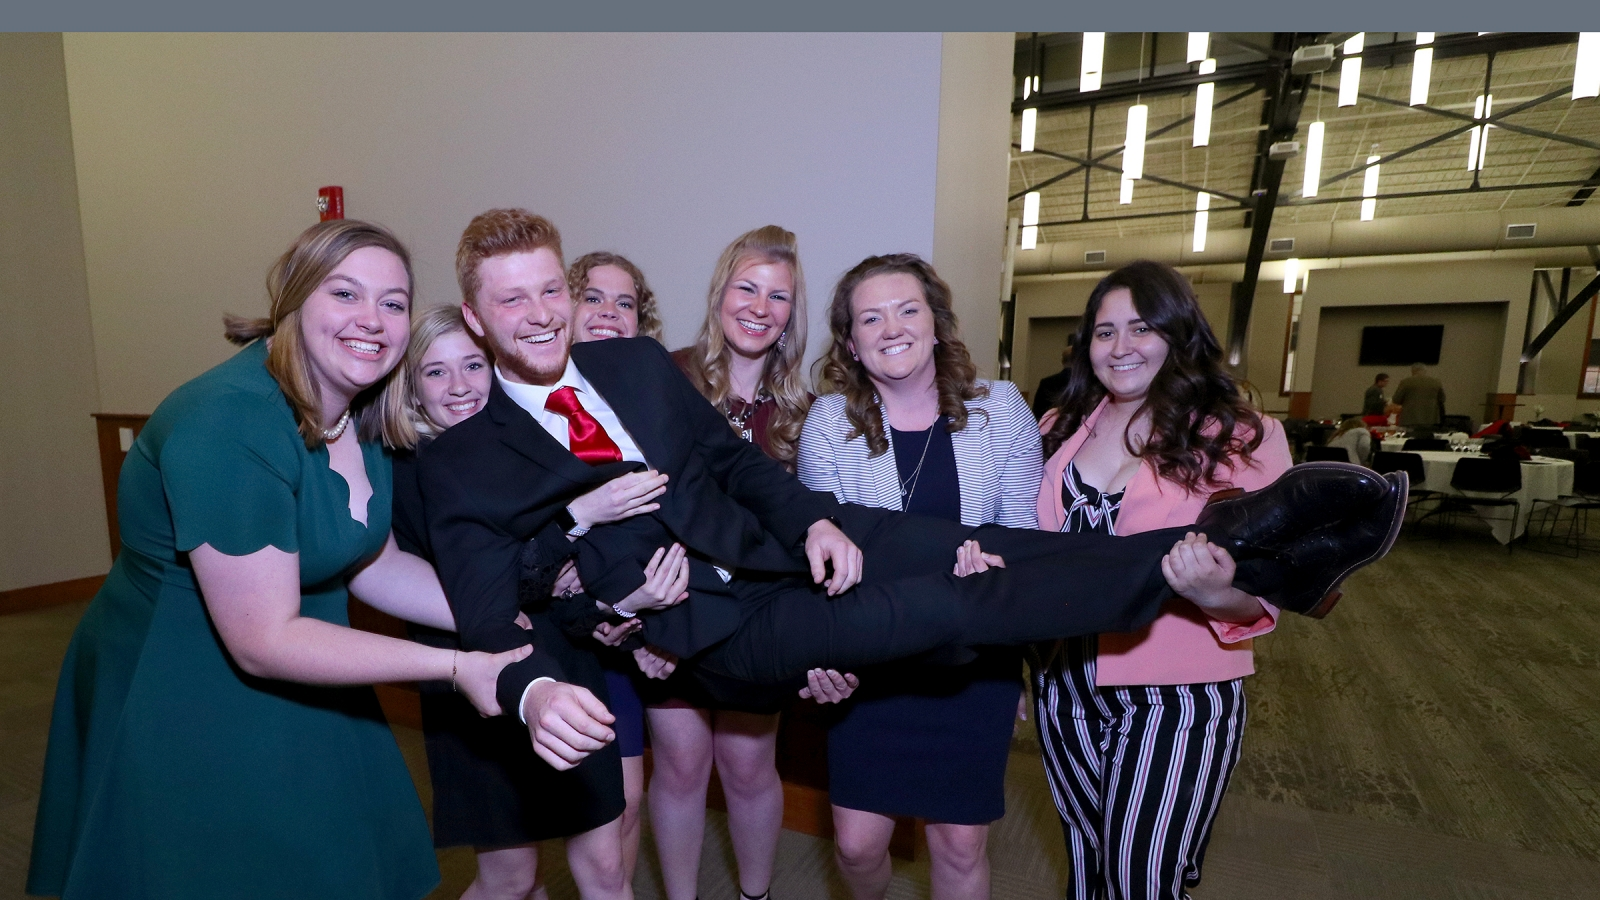 a group of girls lifts a man who lays down in their arms while posing for the camera